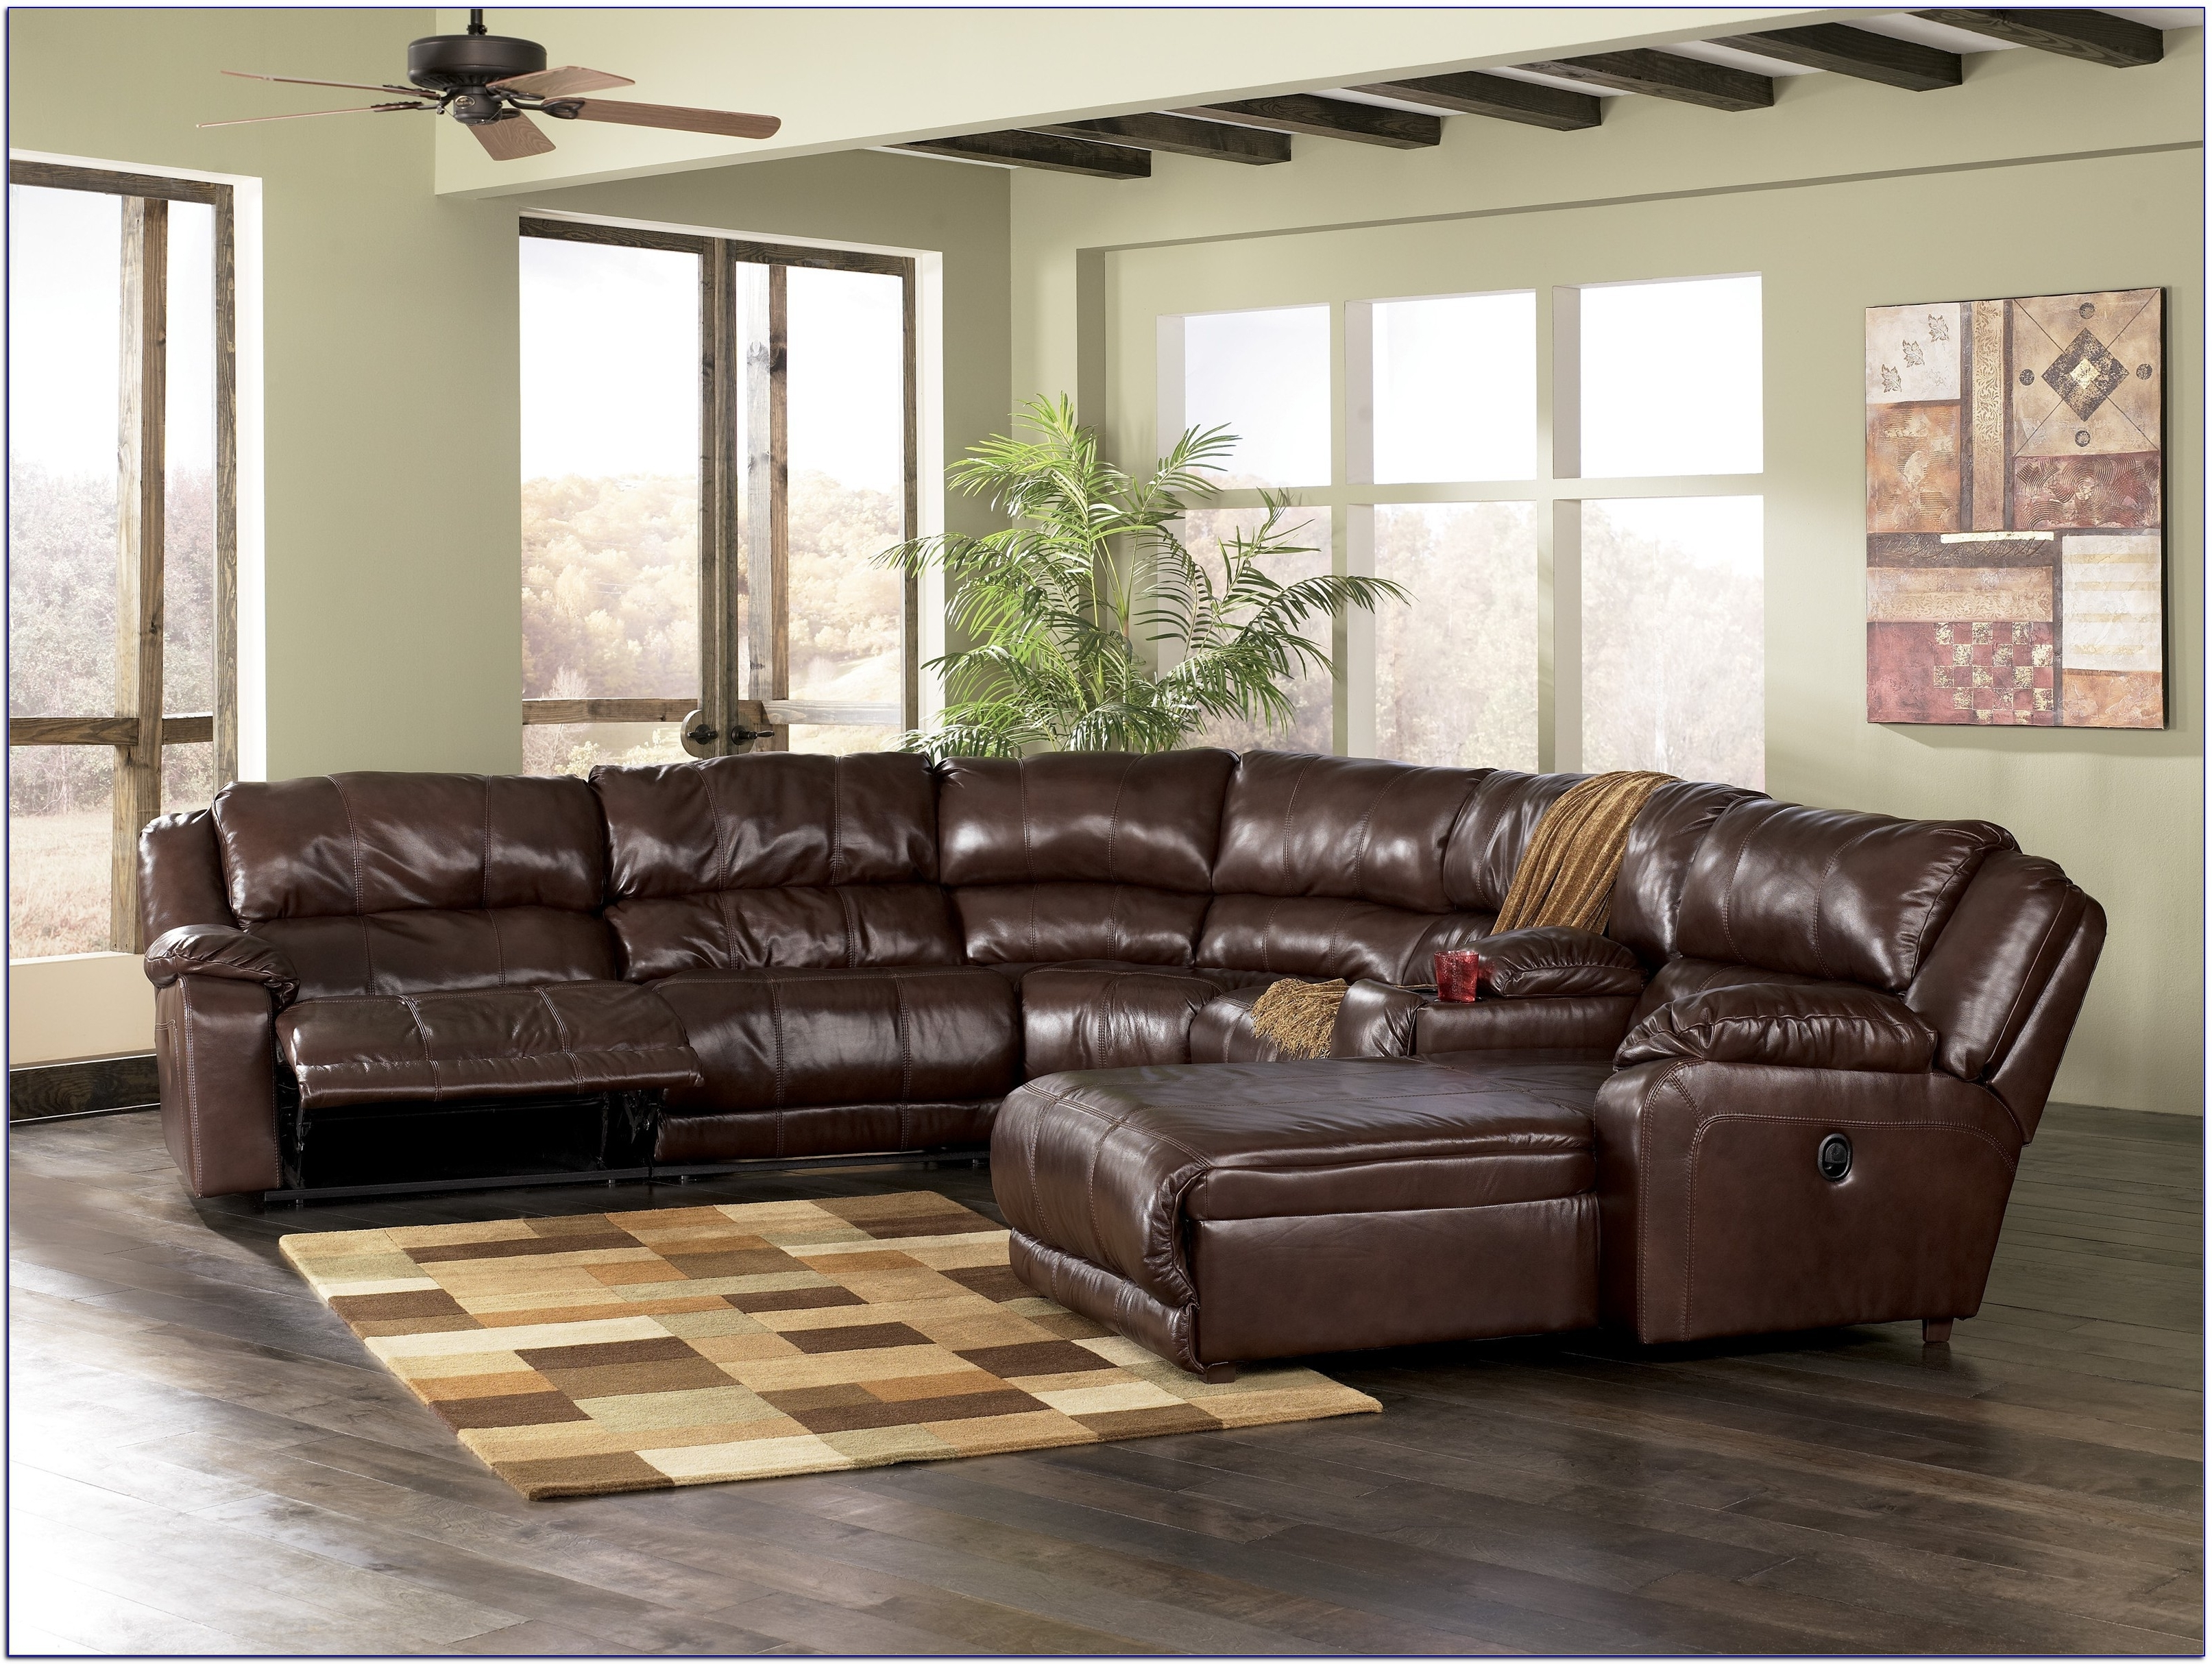 Latest Fresh High Back Sectional Sofa With Recliners – Buildsimplehome Pertaining To Sectional Sofas With High Backs (View 9 of 20)